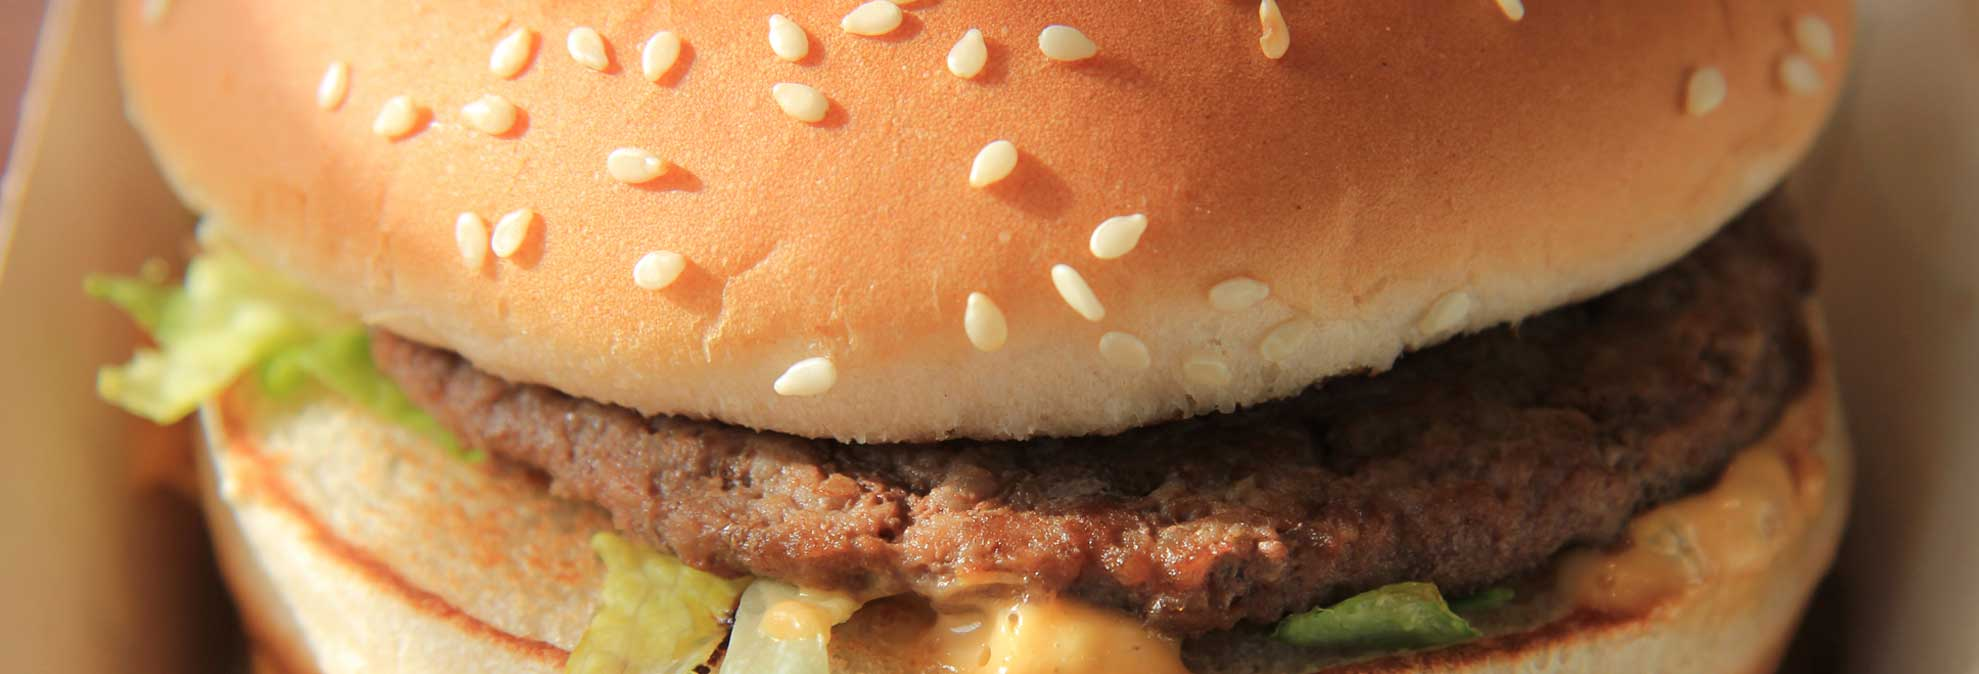 Best Fast-food Restaurant Buying Guide – Consumer Reports